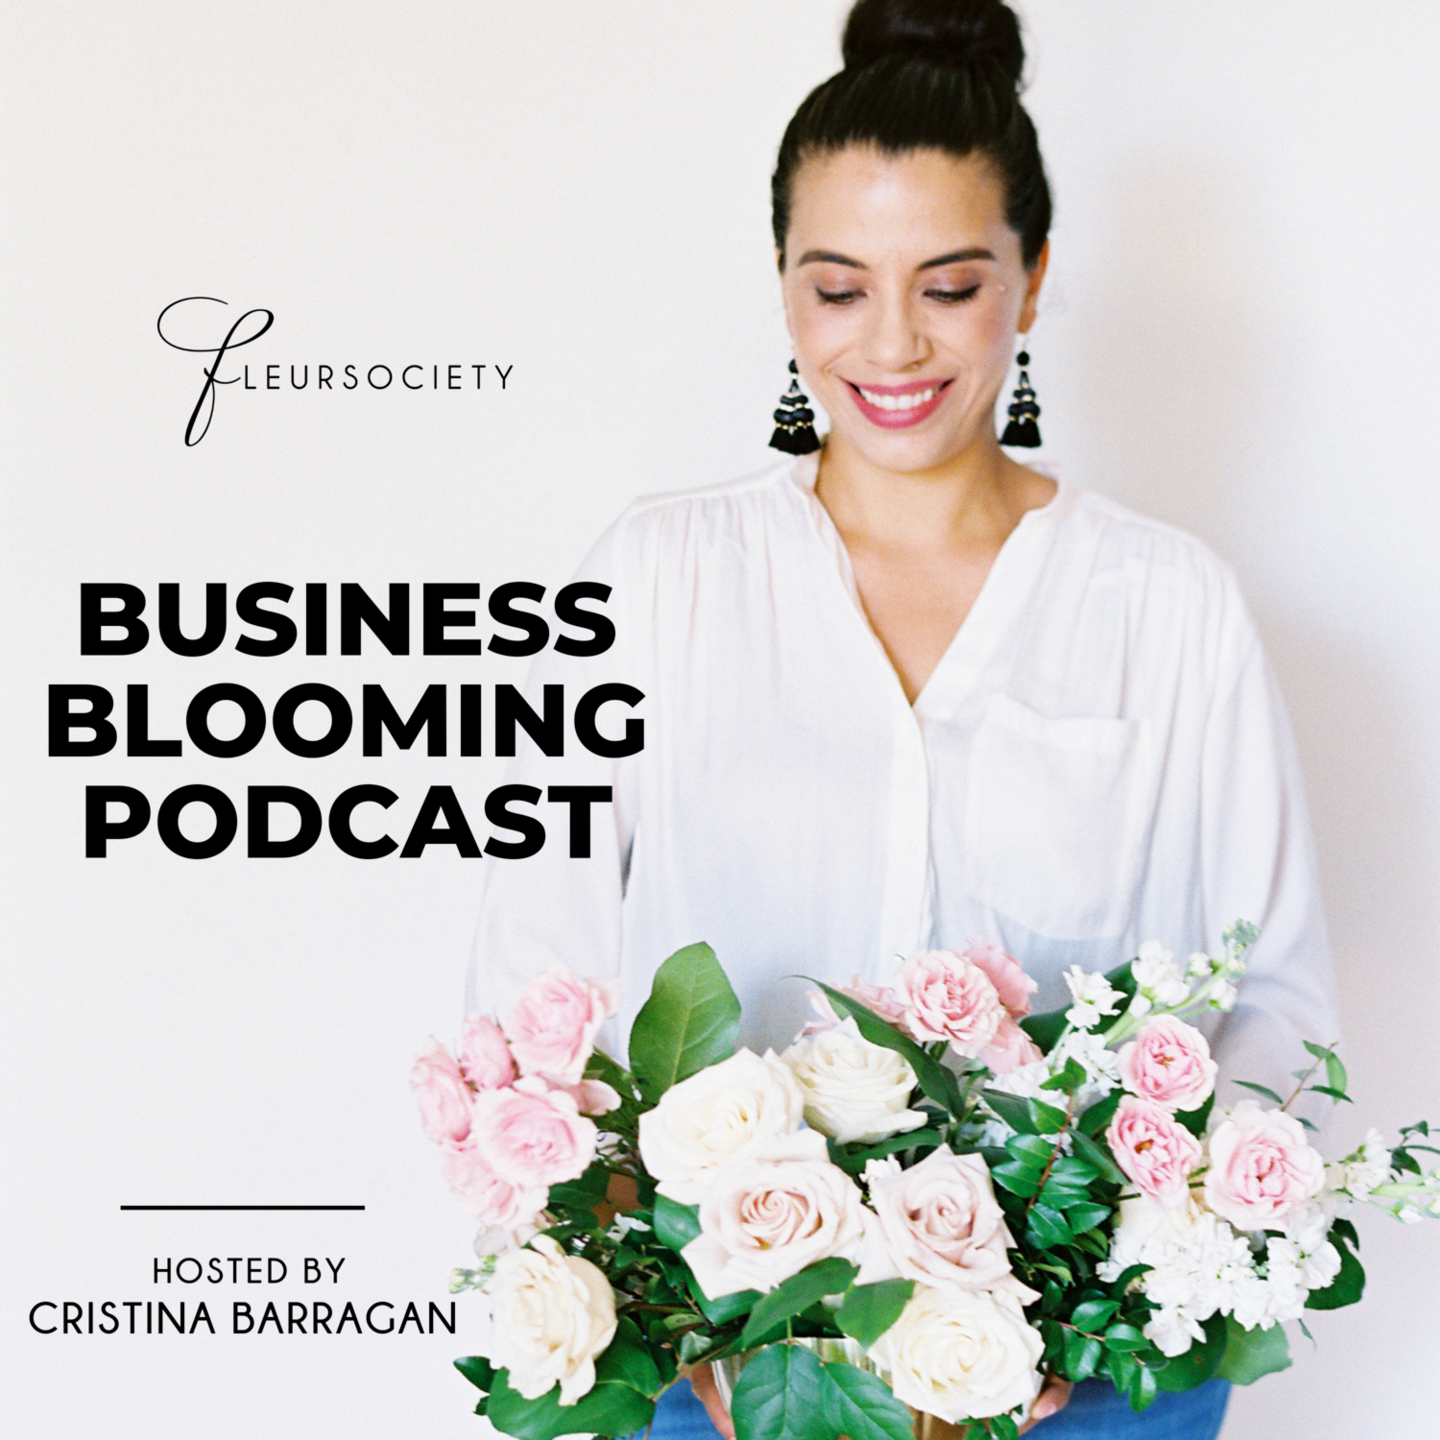 Christina Barragan holding flowers - podcast cover